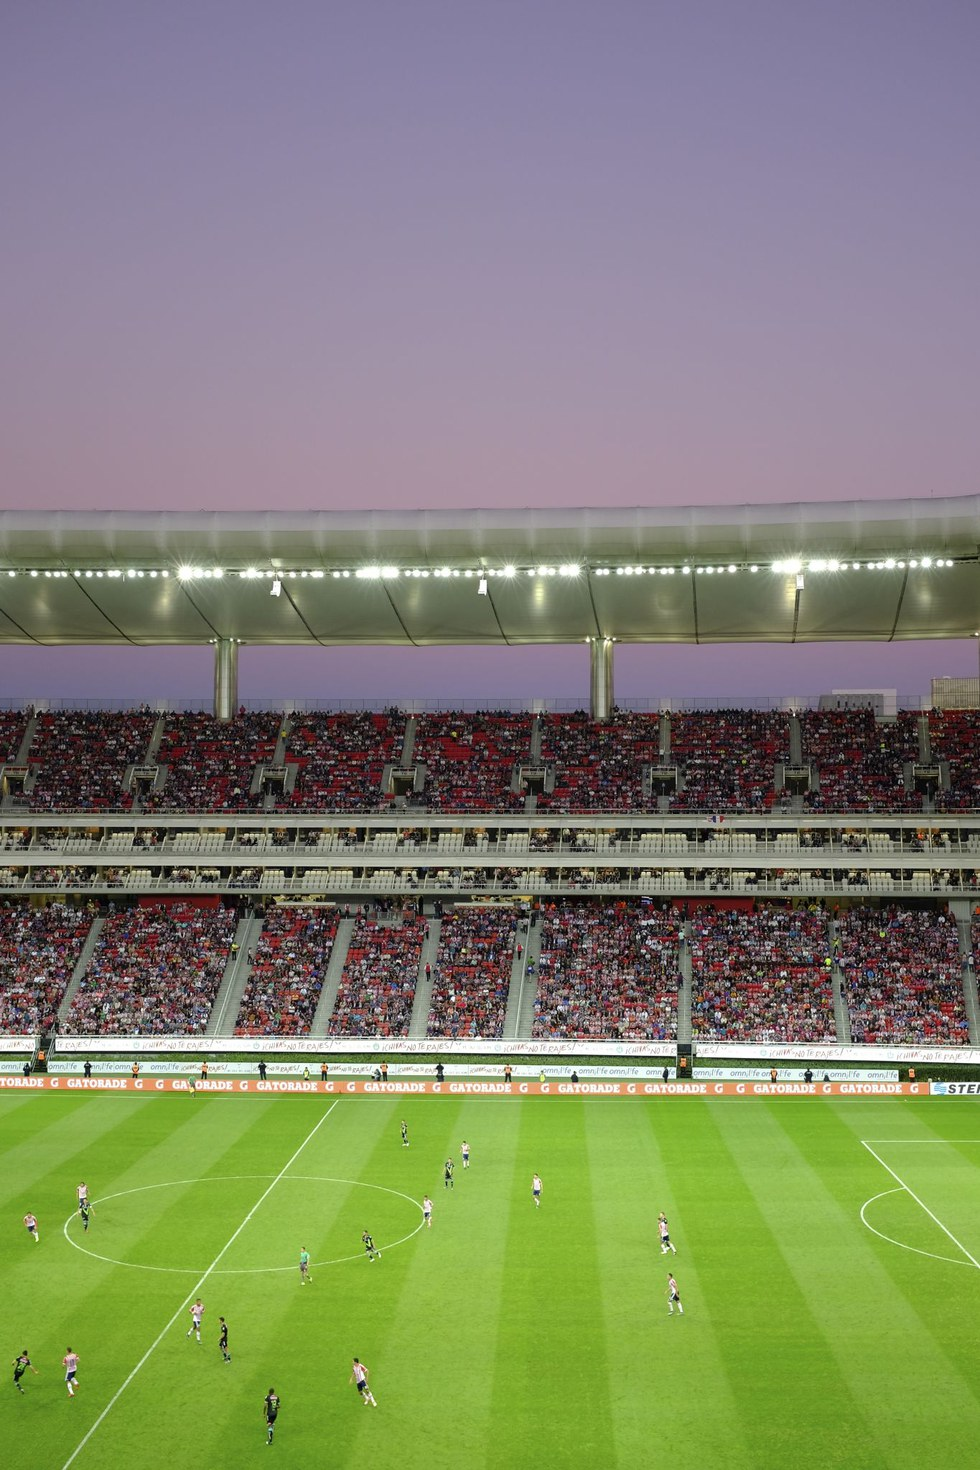 Chivas moves up the field at dusk